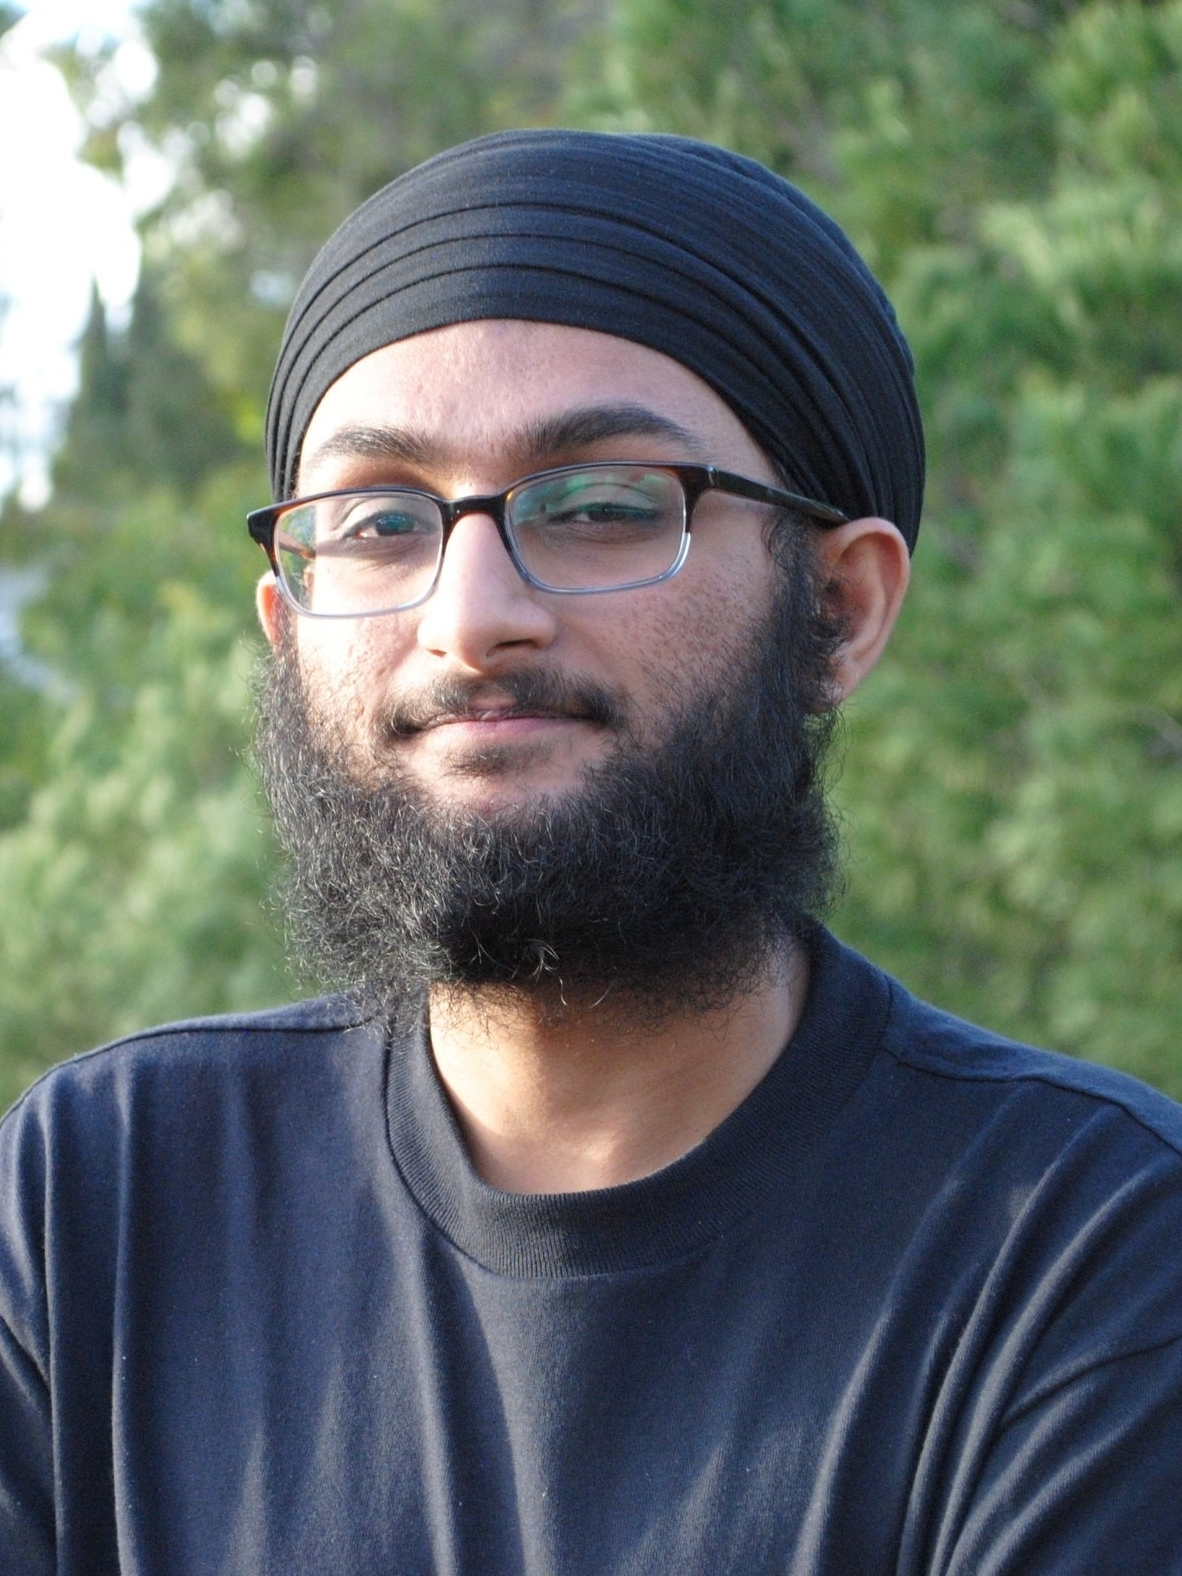 Kabir Singh - New York University, Courant InstituteM.S. Computer Science (2019)Tufts University, B.S. Computer Science, cum laude 99th Percentile in ACT & SATA natural teacher and mentor, Kabir has enjoyed working extensively with students of all types over the last seven years. While in High School, Kabir advised struggling students, some with learning disabilities, to help them gain a passion for mathematics. During his time at Tufts University, Kabir was hired in his sophomore year to be a Teaching Assistant for courses including Machine Structure + Assembly-Level Languages, Graphics, and Internet- Scale Distributed Systems. He has experience working in a variety of languages such as Java, C/C++, and Python, alongside work at MIT Lincoln Laboratory and Qualcomm. Currently a Master's student at NYU, Kabir is studying how to apply Machine Learning and Data Science to the Medical and Healthcare fields.